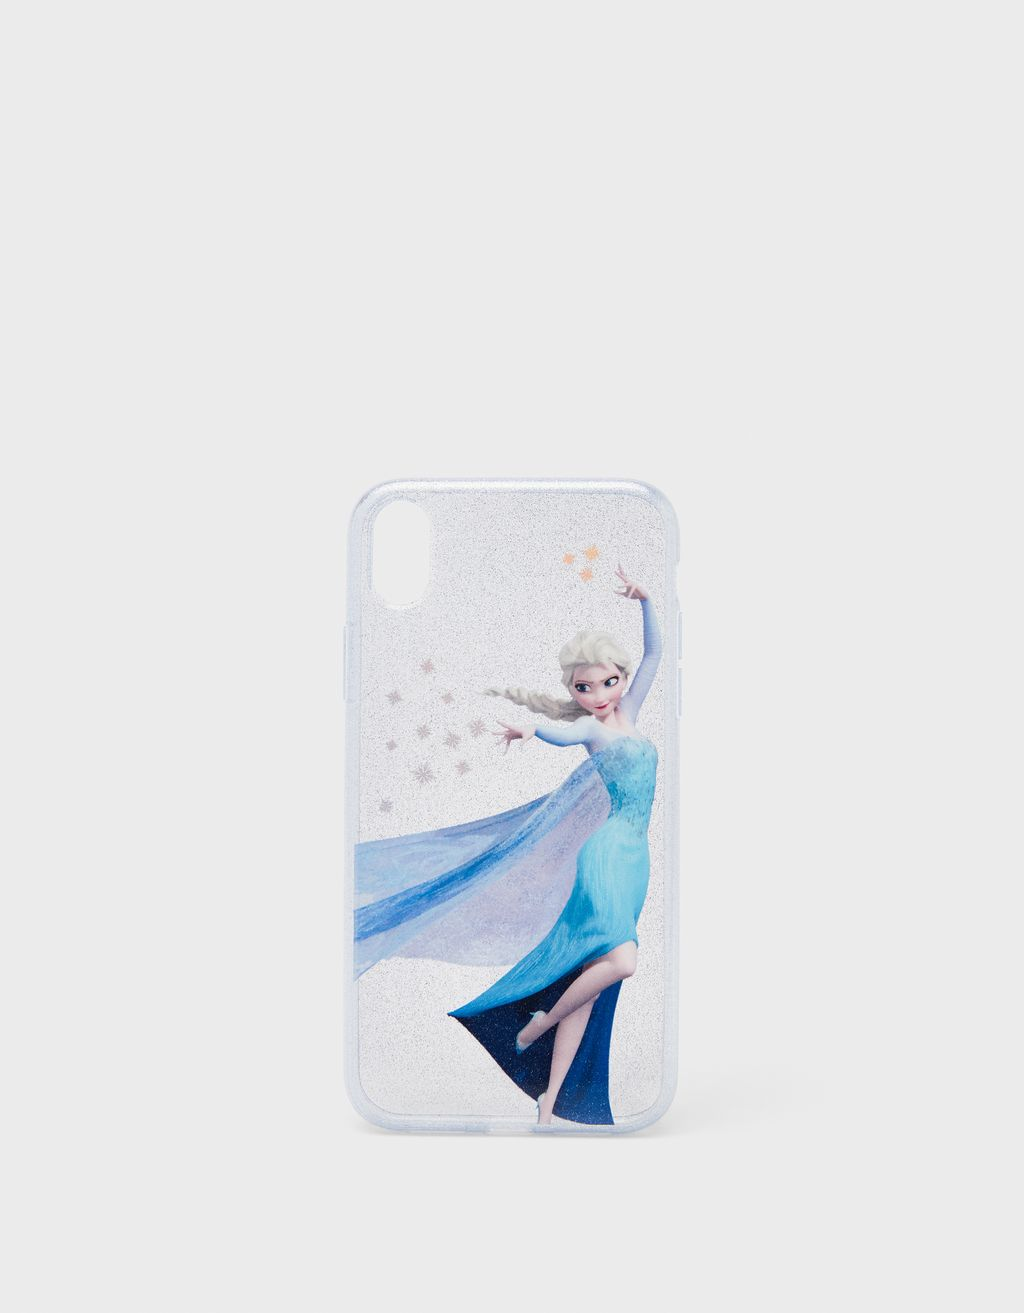 Frozen iPhone XR case